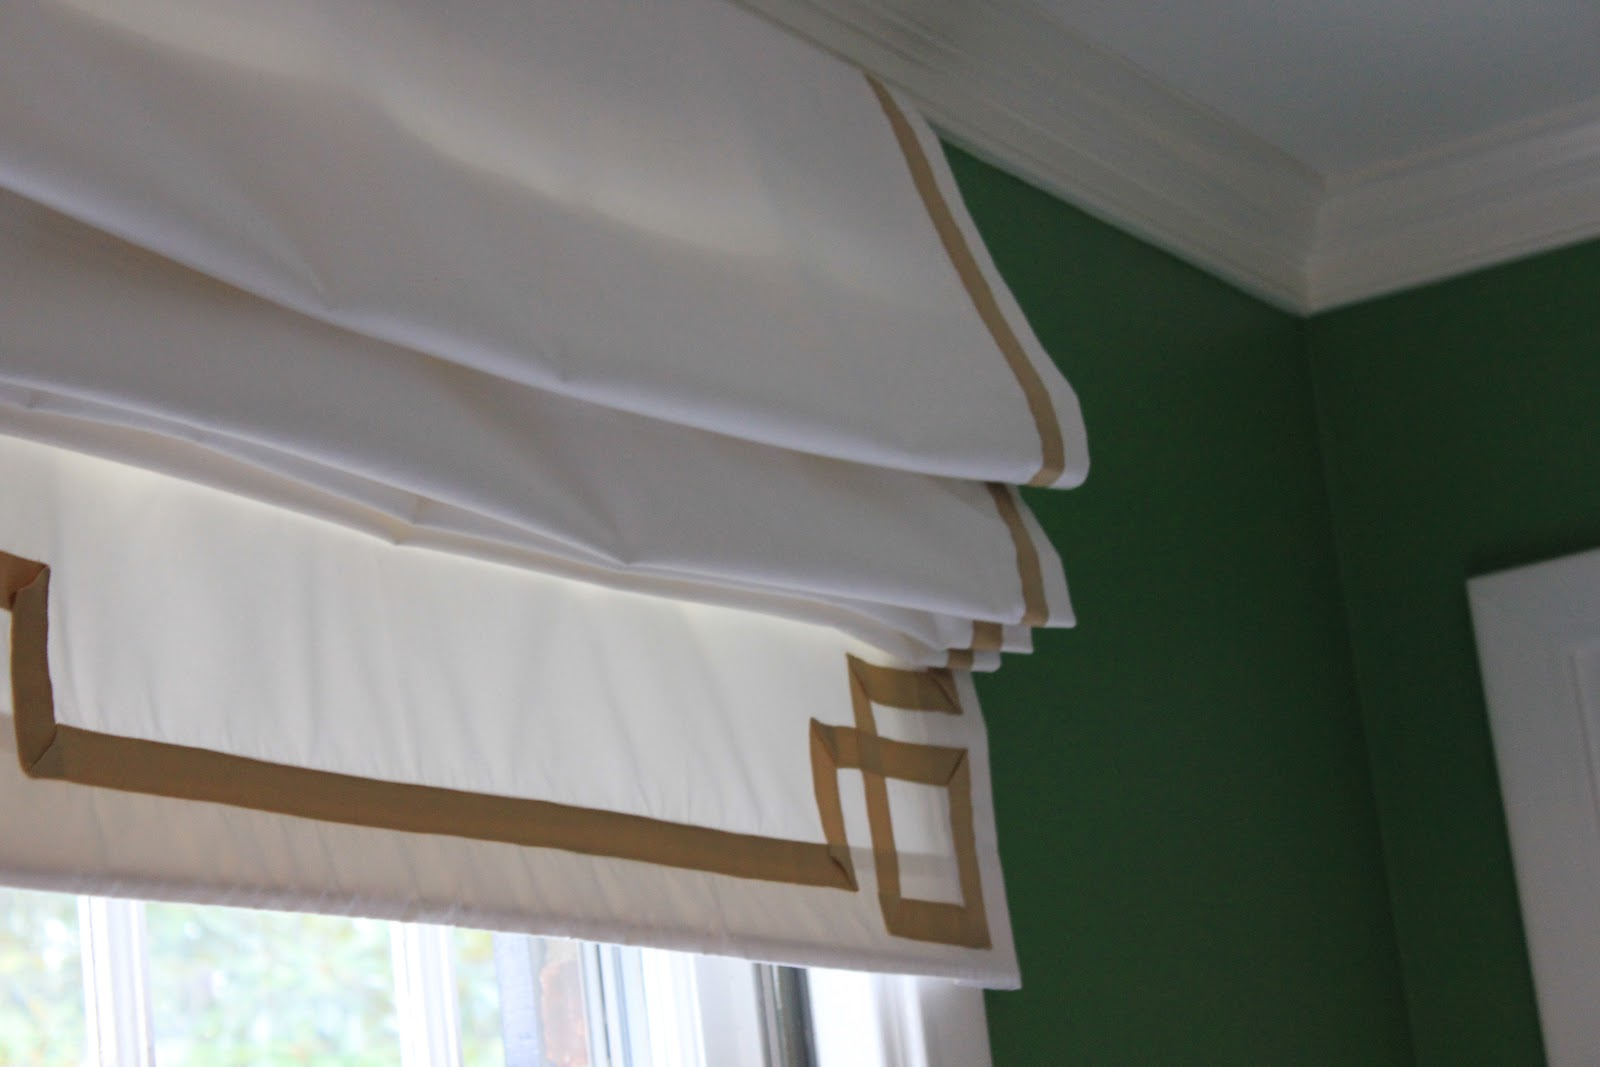 Diy Roman Shades Easy Westhampton Diy How To Make A Roman Shade From A Curtain With Or